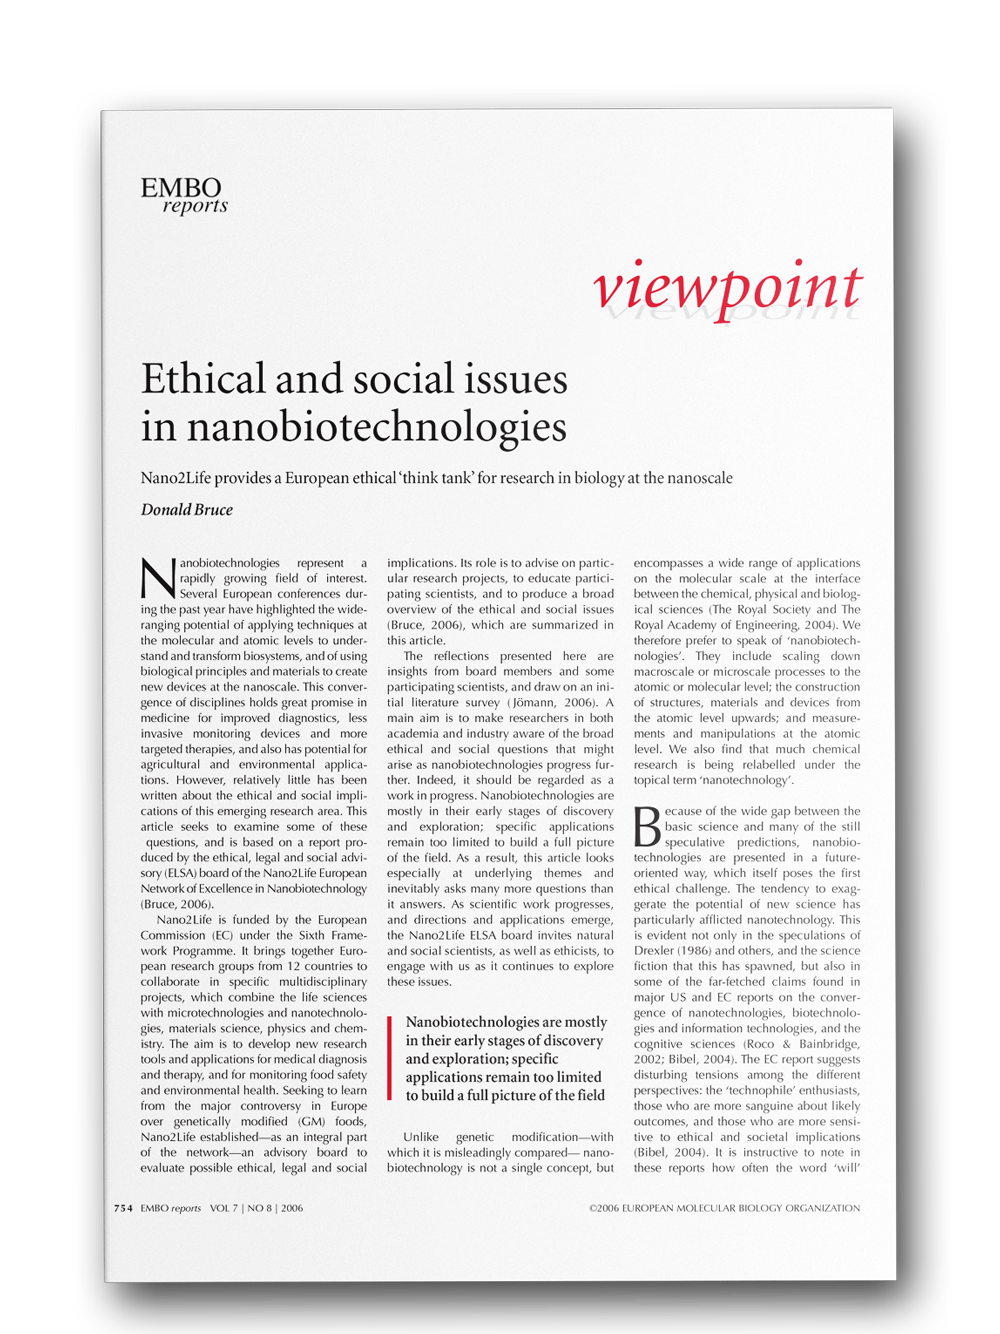 image: Ethical and social issues in nanobiotechnologies